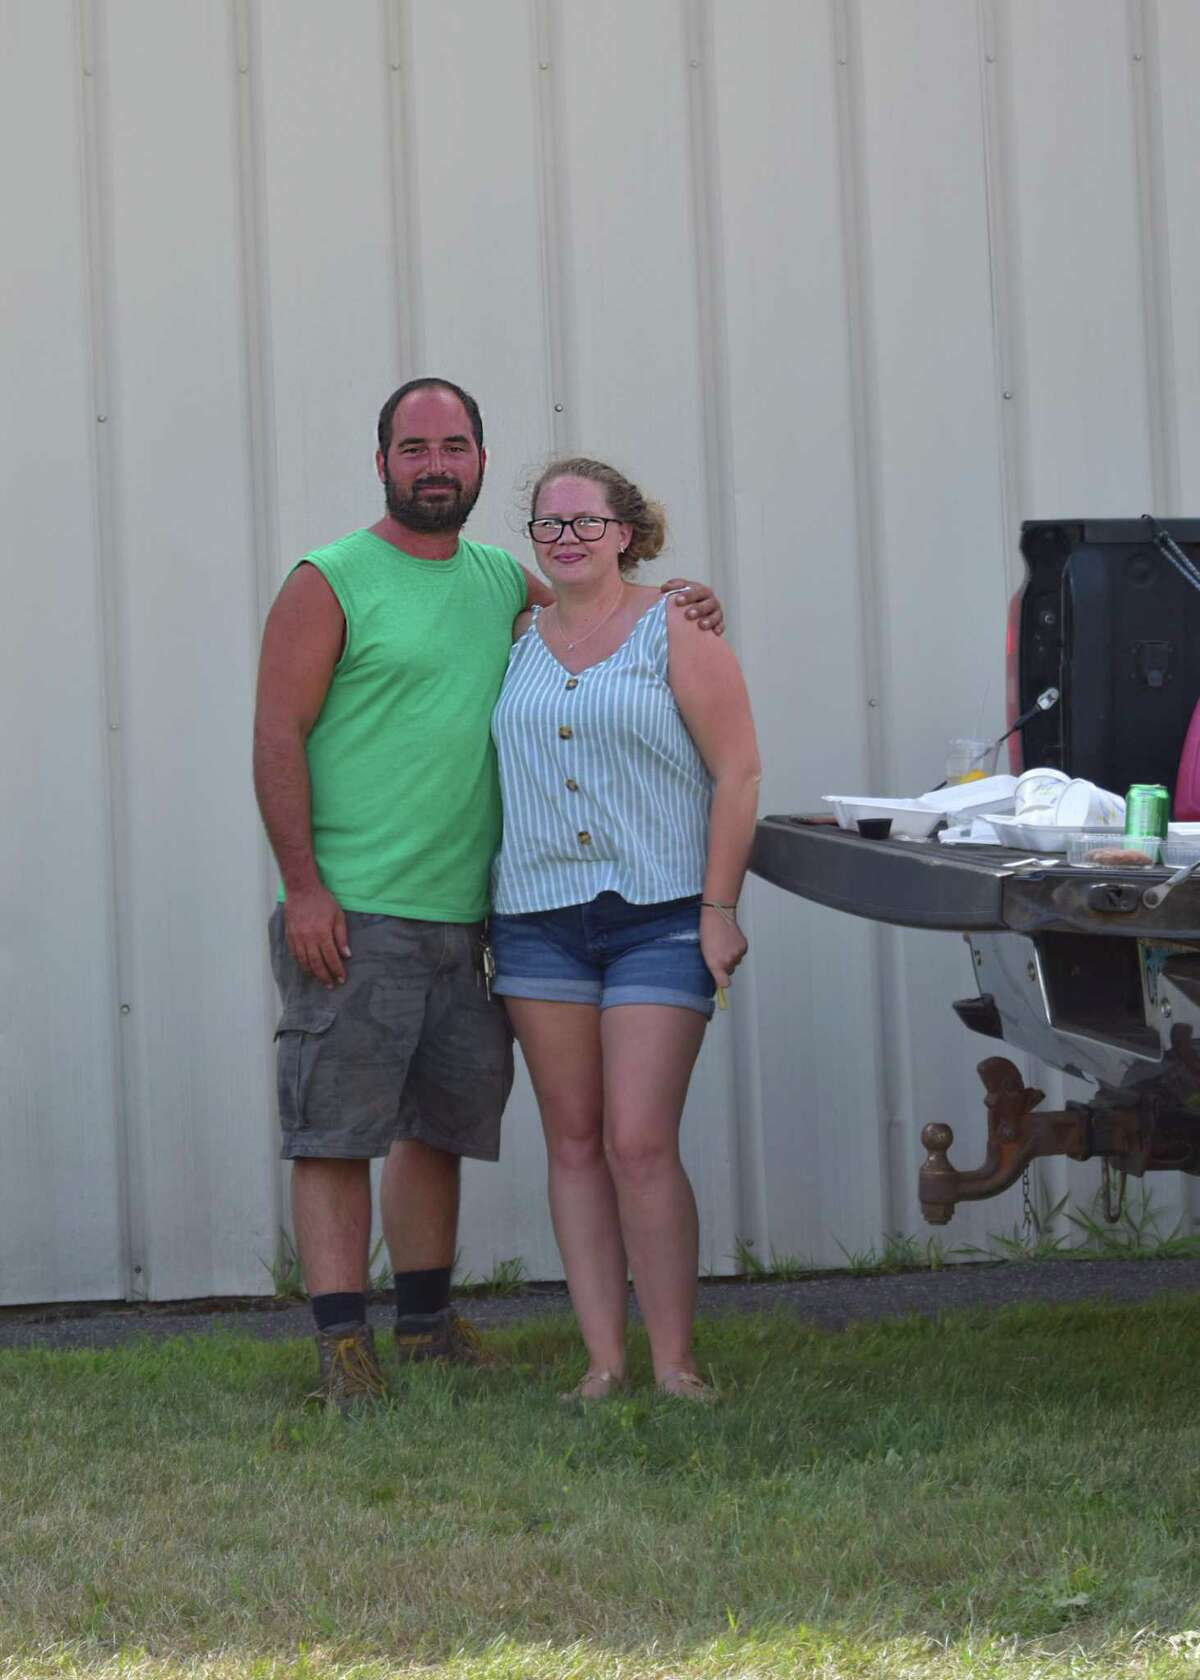 Eric Vogt and Britney Correll of Burlington enjoyed Low N Slow Mac N Cheese while tailgating Aug. 1 at the Food Truck Drive-Thru Festival at the Goshen Fairgrounds.